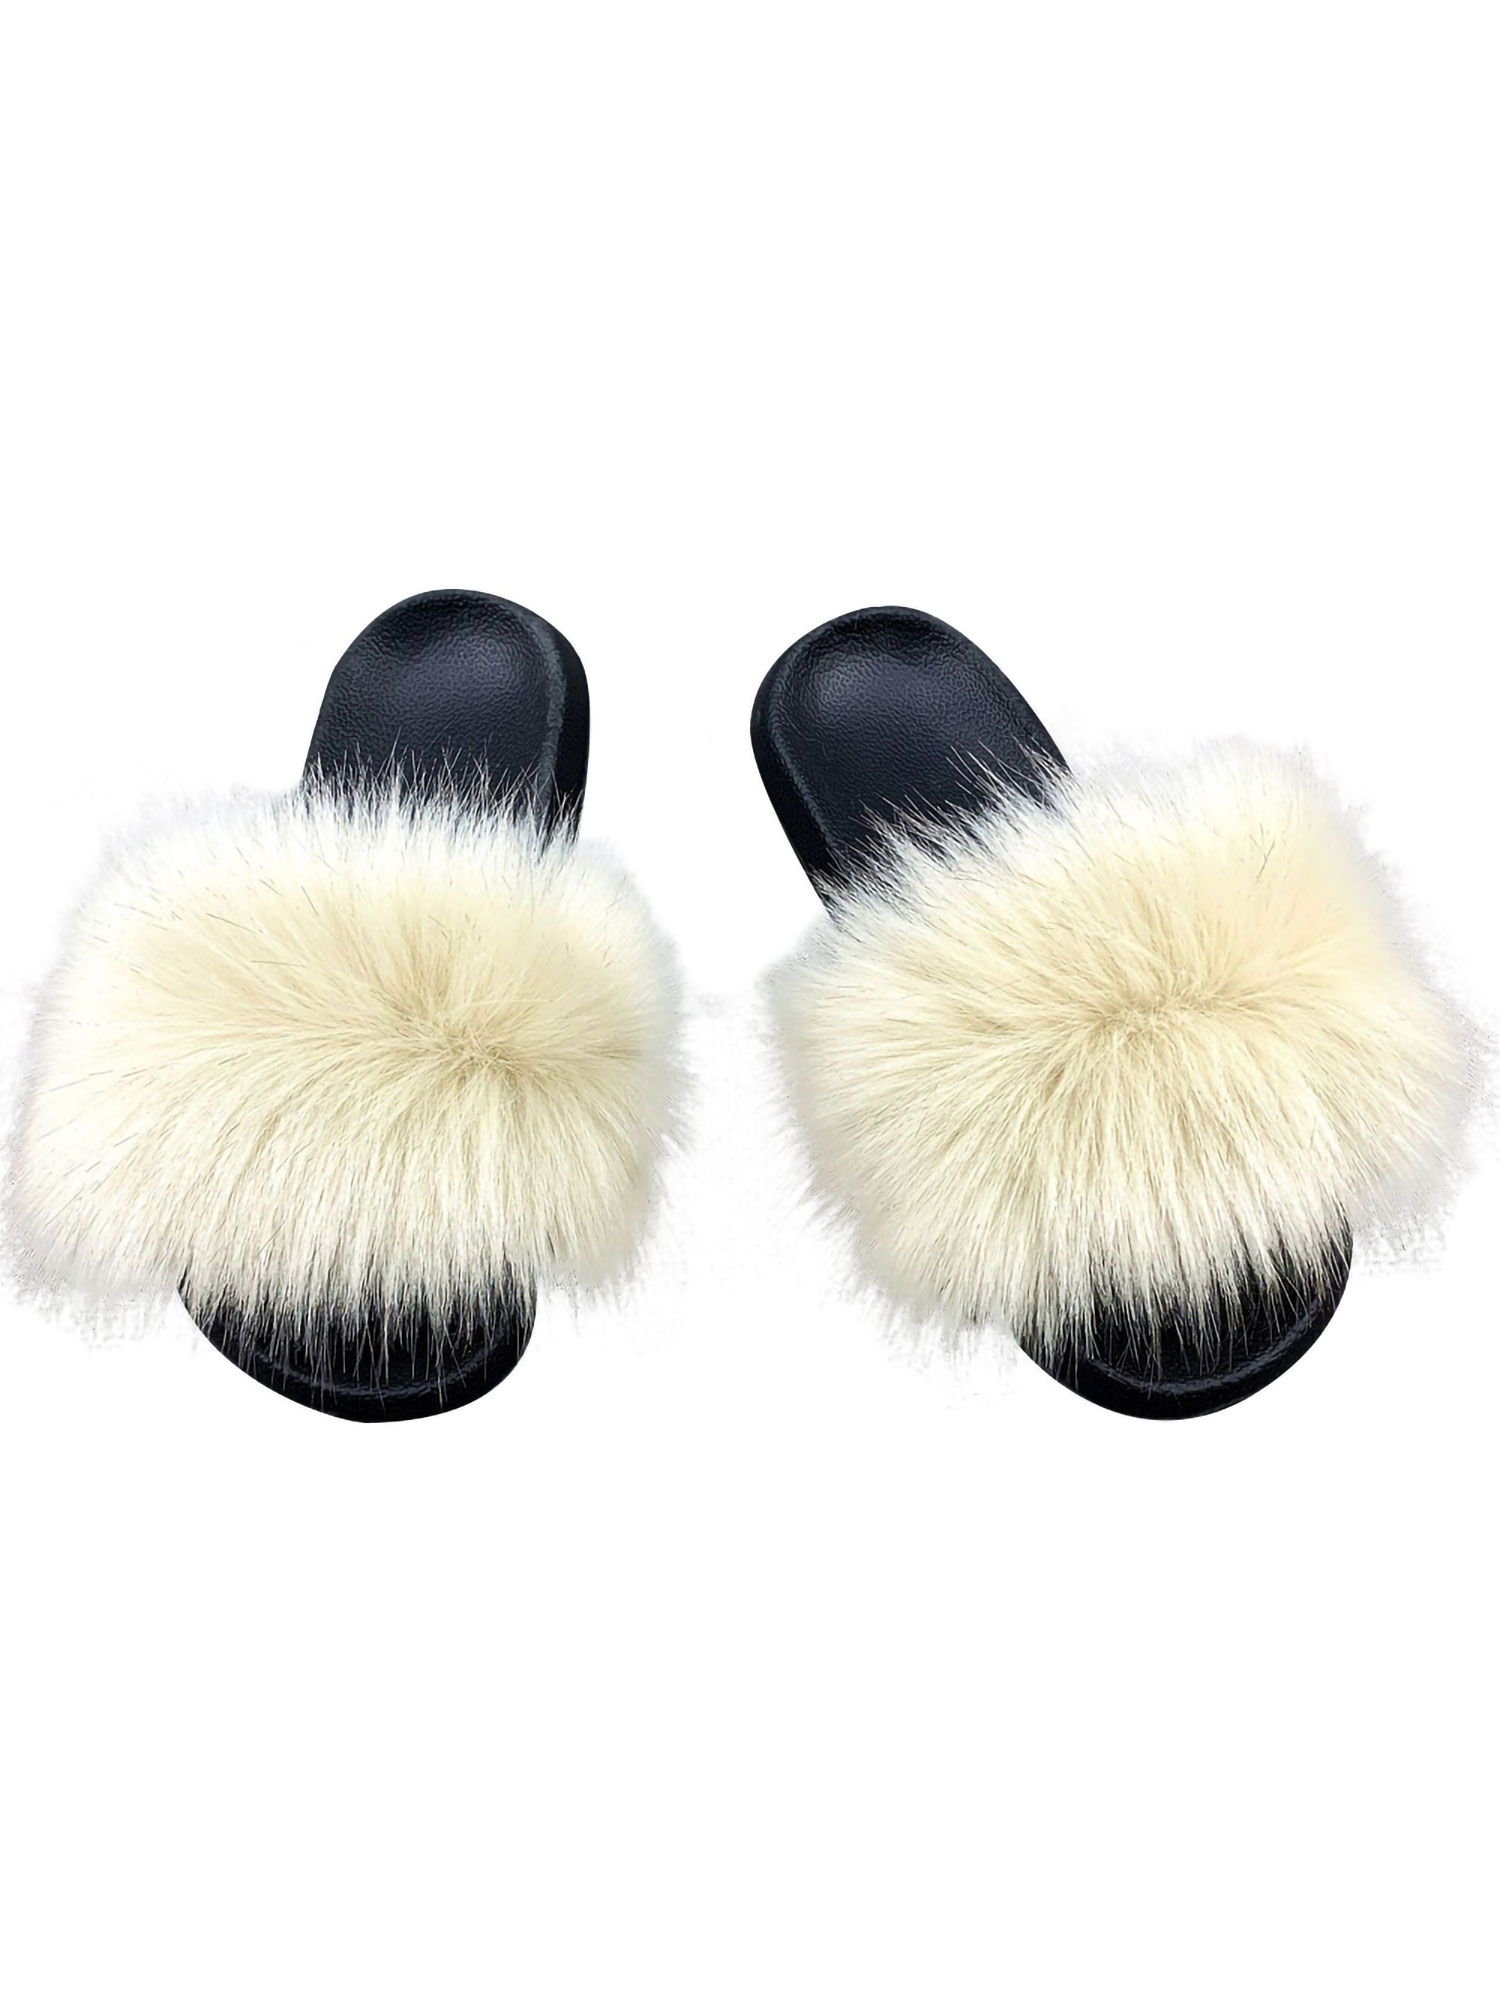 Women/'s Real Fox Fur Slides Fuzzy Furry Slippers Comfort Sliders Sandals Shoes